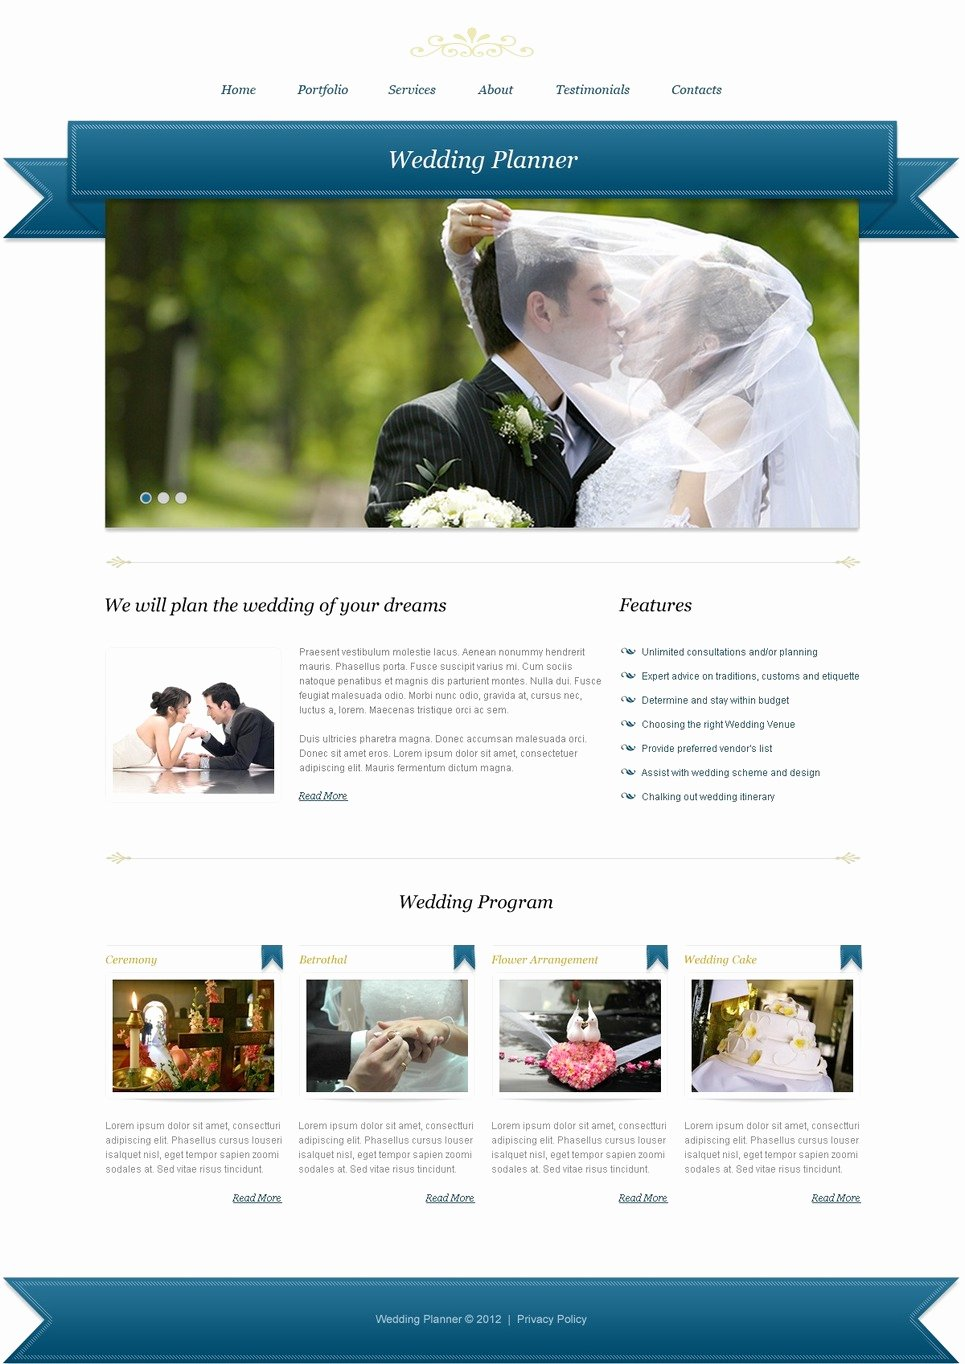 Wedding Planner Website Template Awesome Wedding Planner Website Template